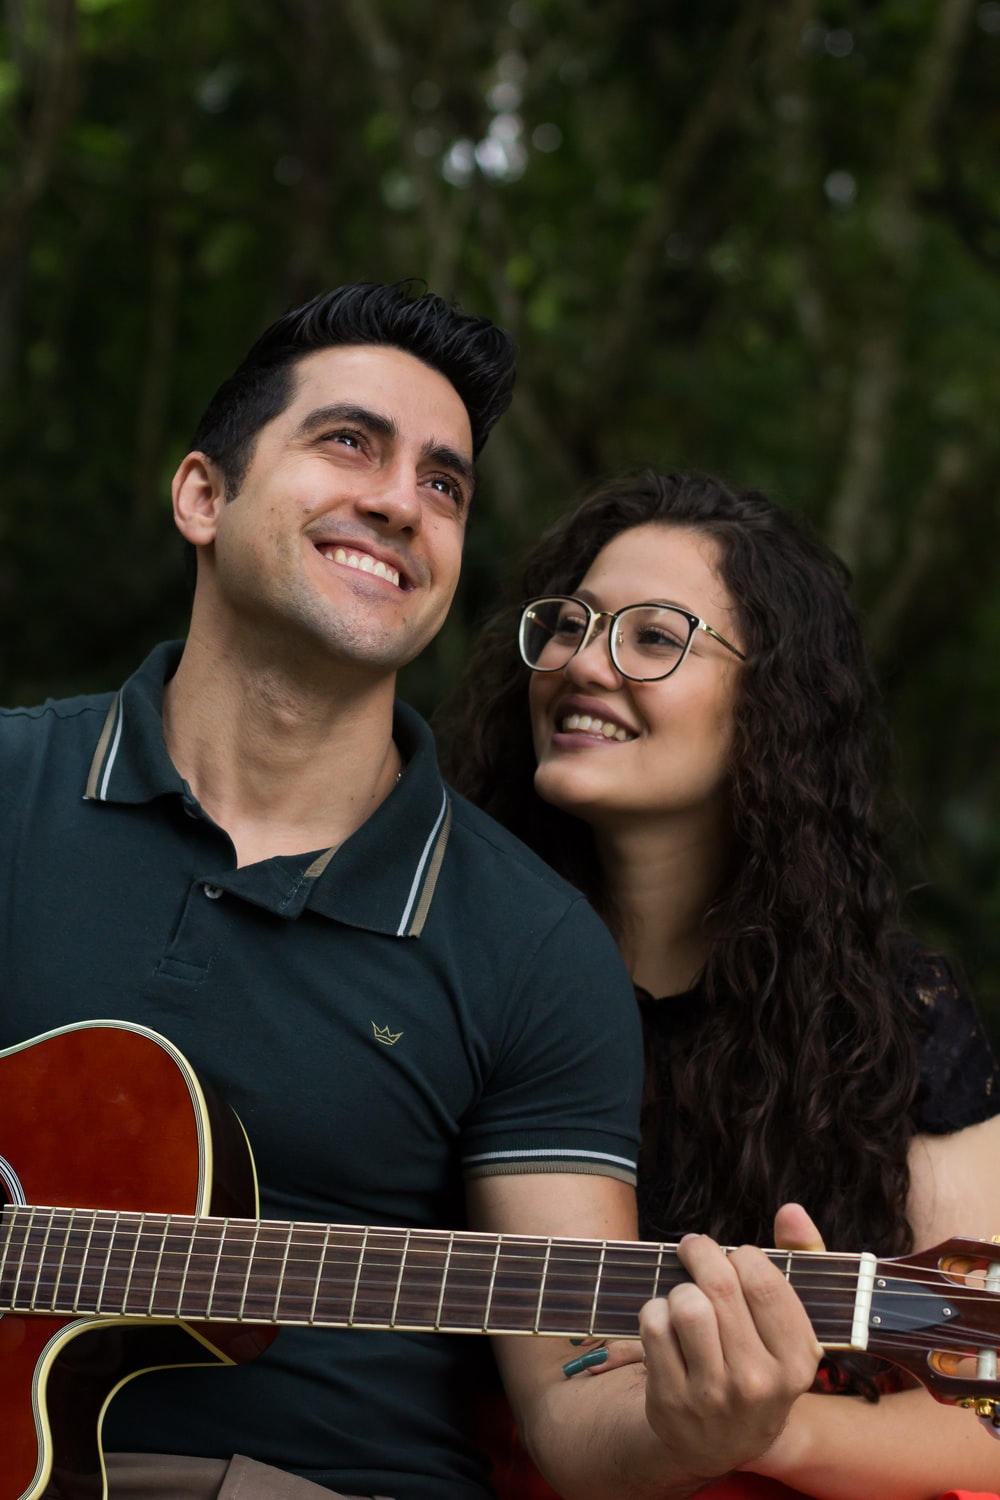 selective focus photography of smiling woman beside man who play guitar during daytime